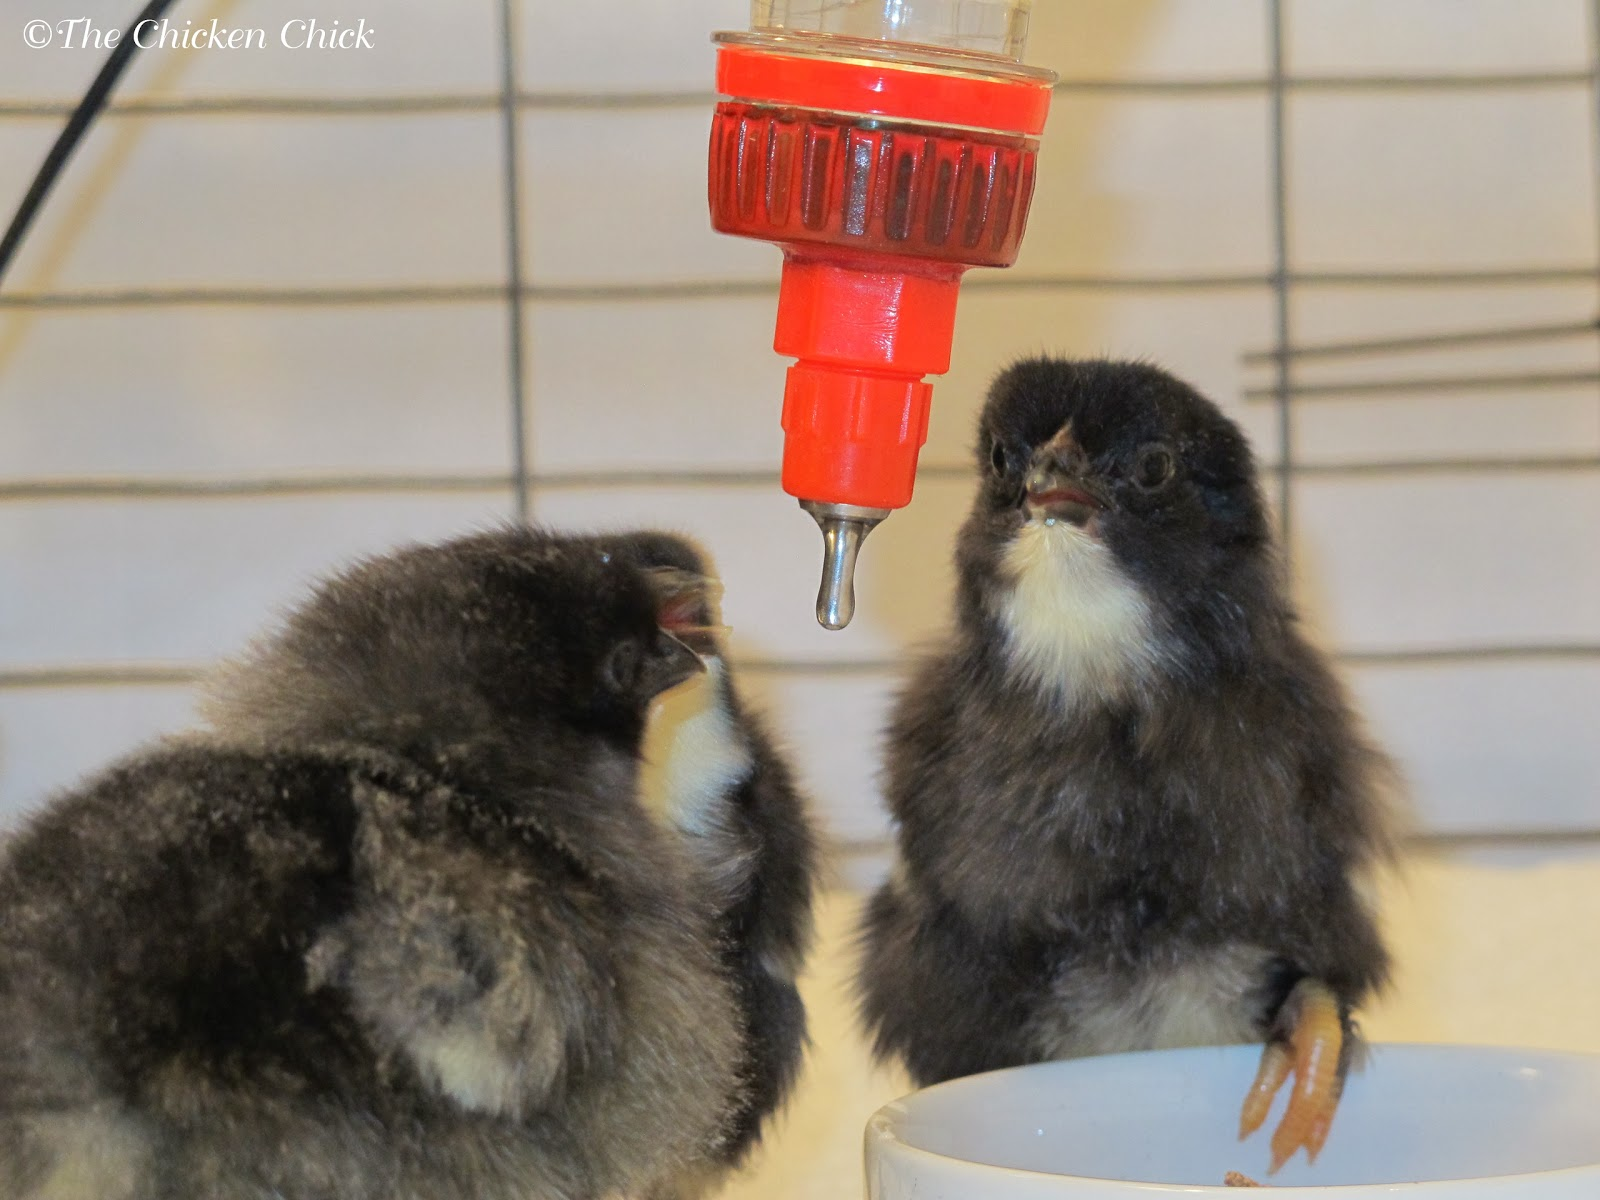 Chicks quickly learn to drink from poultry nipple waterers from day one.